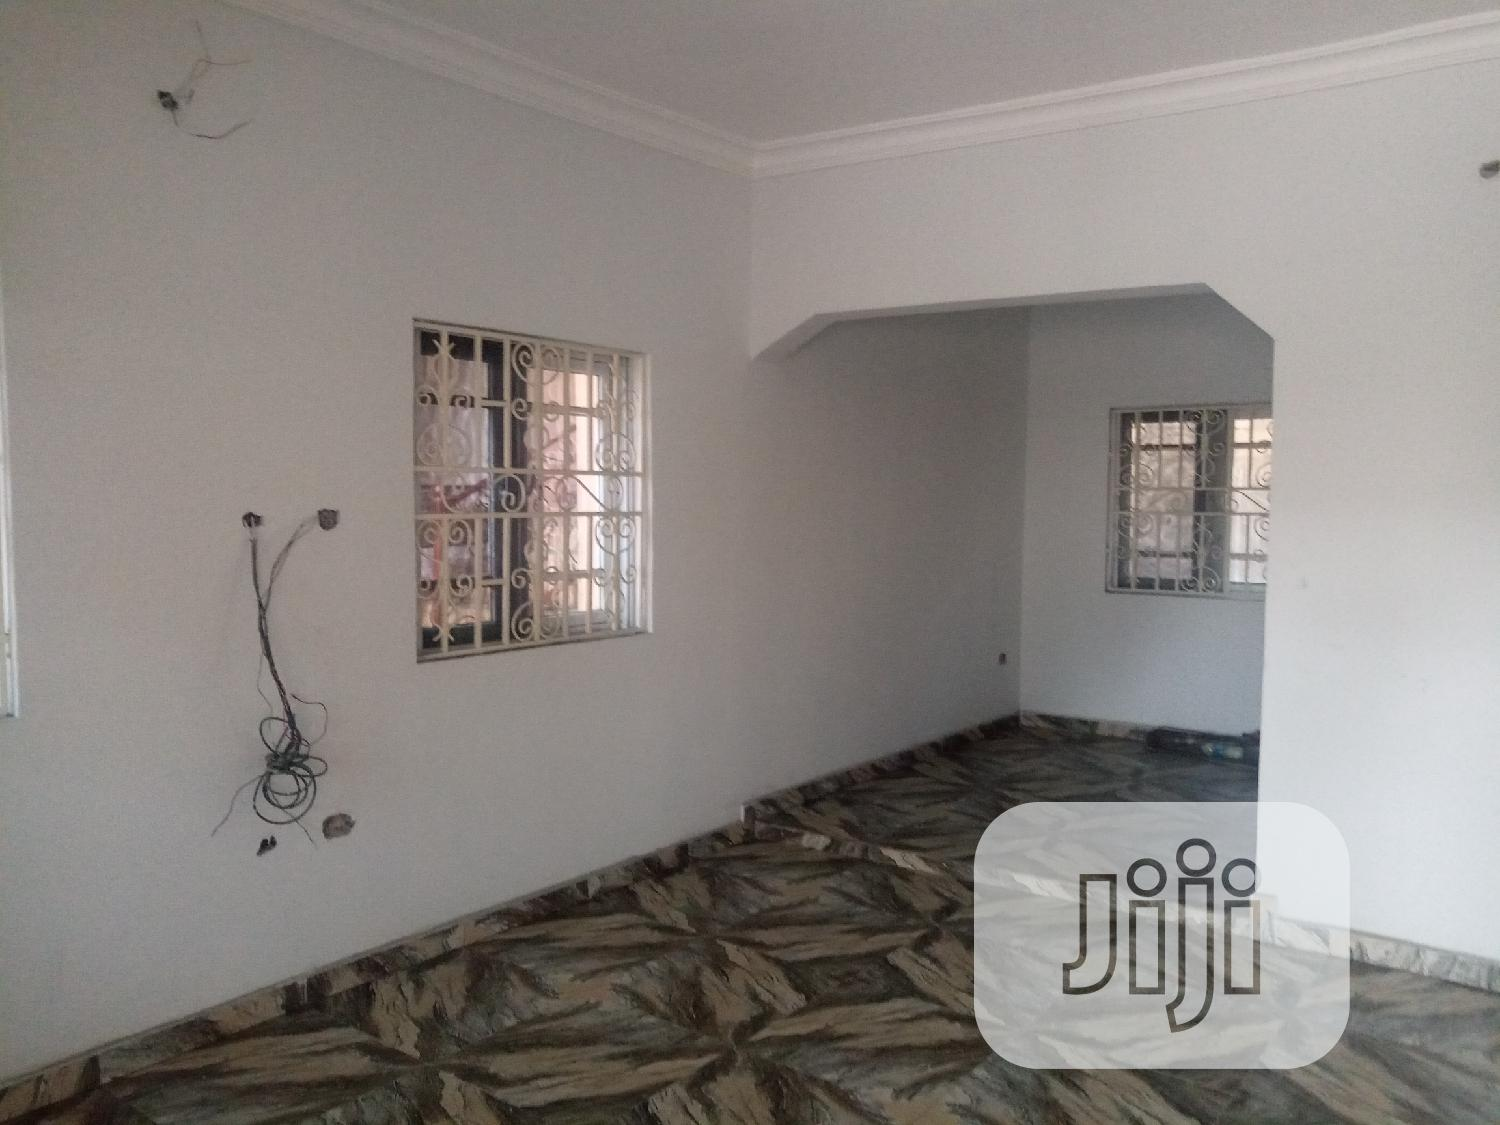 5 Bedromm Duplex For Sale | Houses & Apartments For Sale for sale in Port-Harcourt, Rivers State, Nigeria